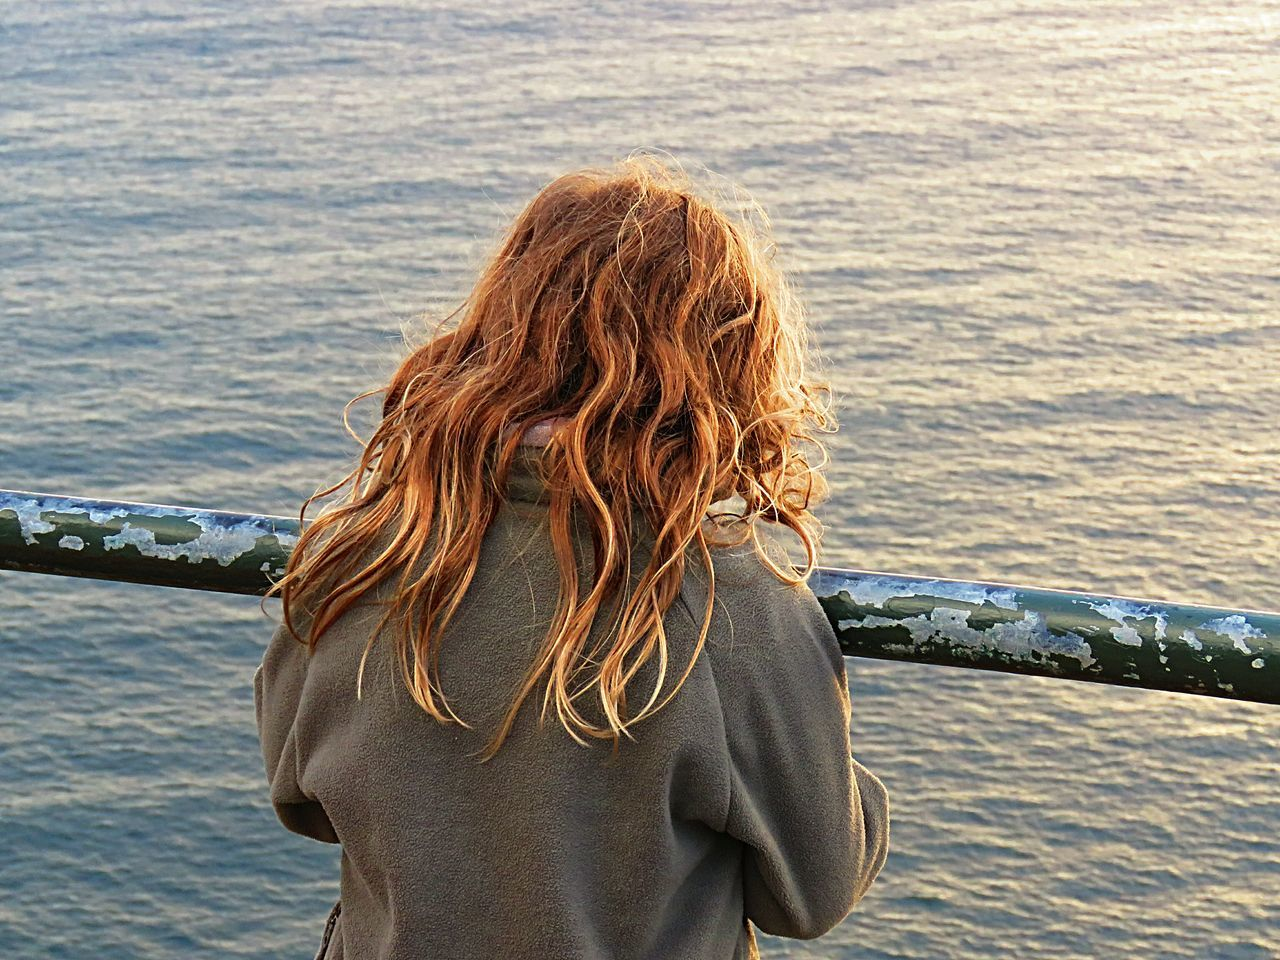 water, rear view, one person, sea, long hair, nature, day, standing, rippled, leisure activity, outdoors, real people, women, one woman only, headshot, blond hair, only women, one young woman only, beauty in nature, young adult, adult, adults only, people